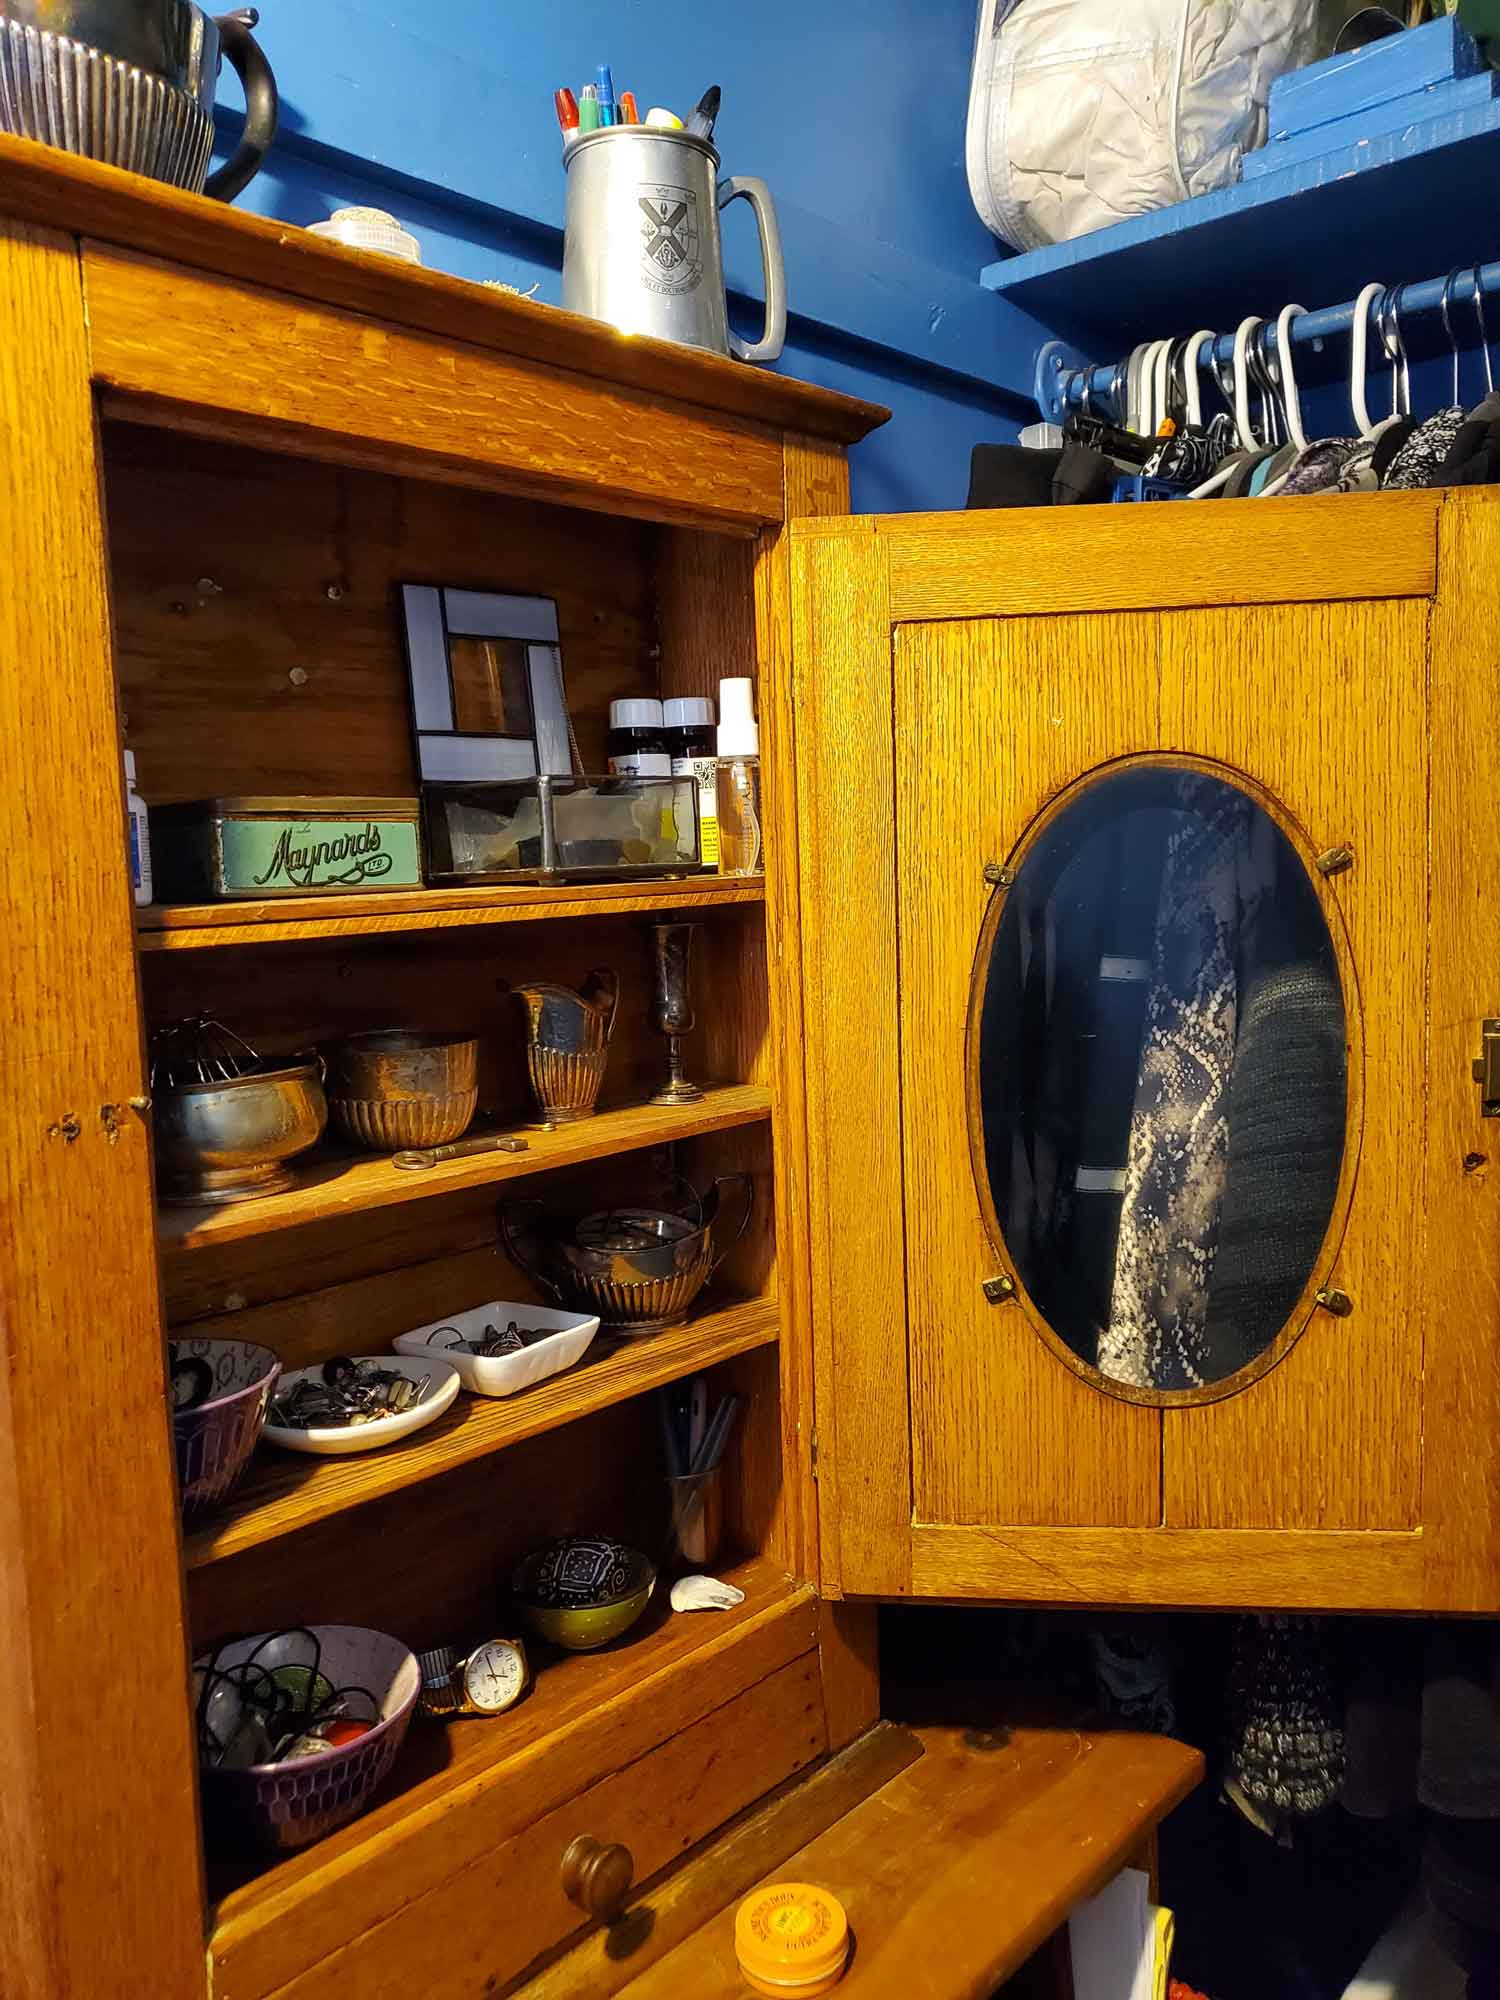 Focus on the inside of the cabinet with items neatly sorted